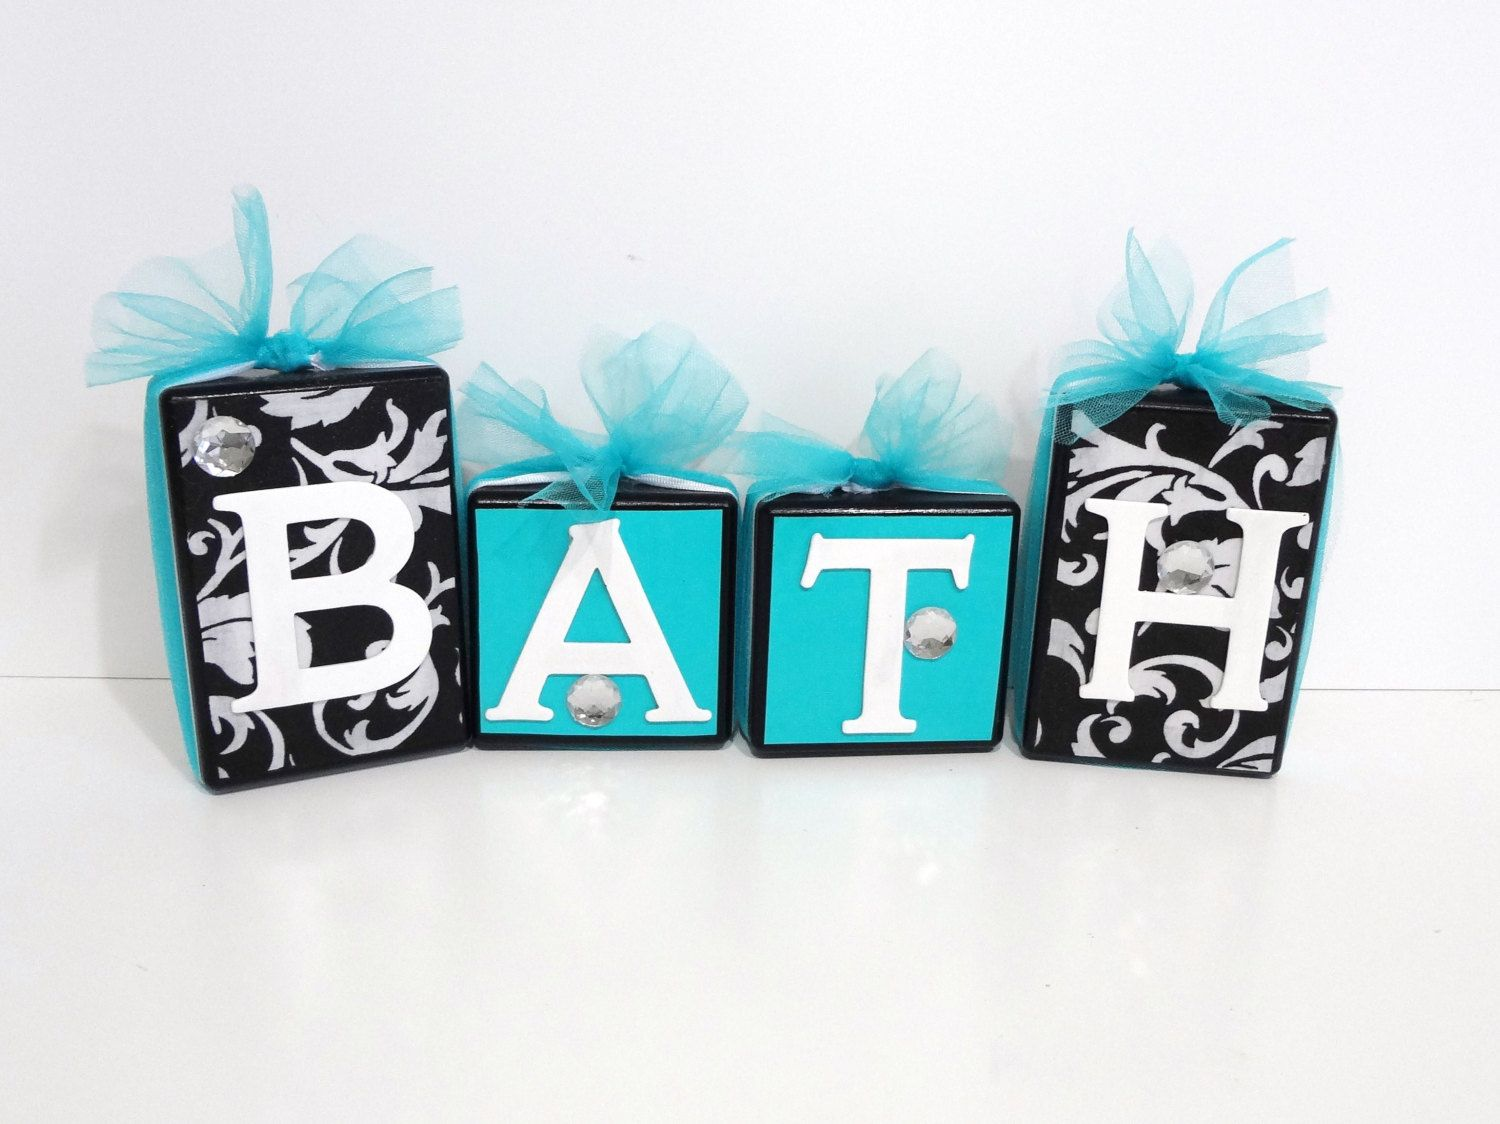 Home Decor Blocks BATH Black And White Damask With Aqua Accent   Ideas For  Towel Hooks